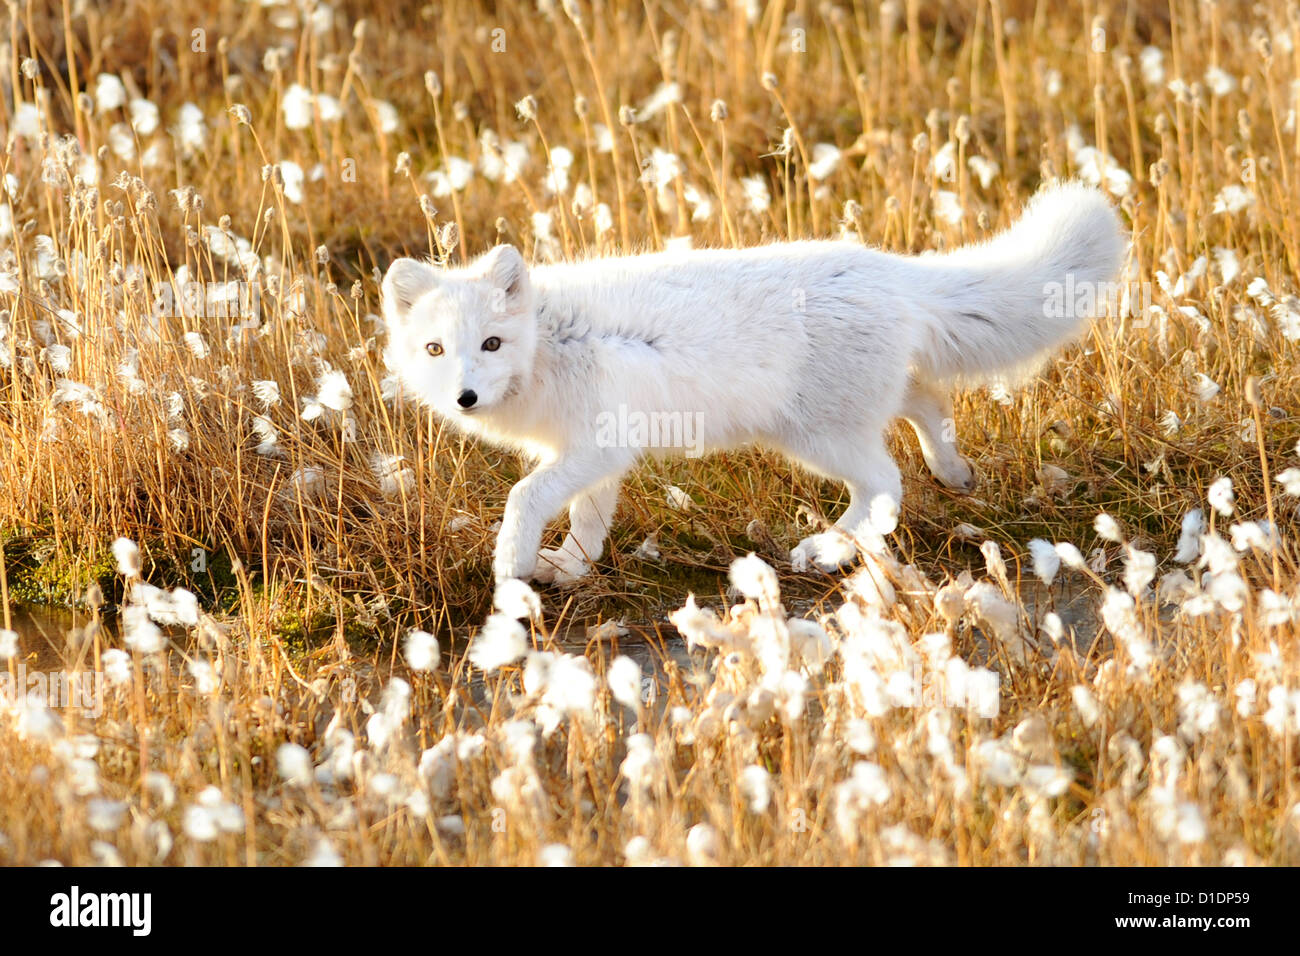 An arctic fox walks through cotton grass September 17, 2012 in Pituffik, Greenland. - Stock Image